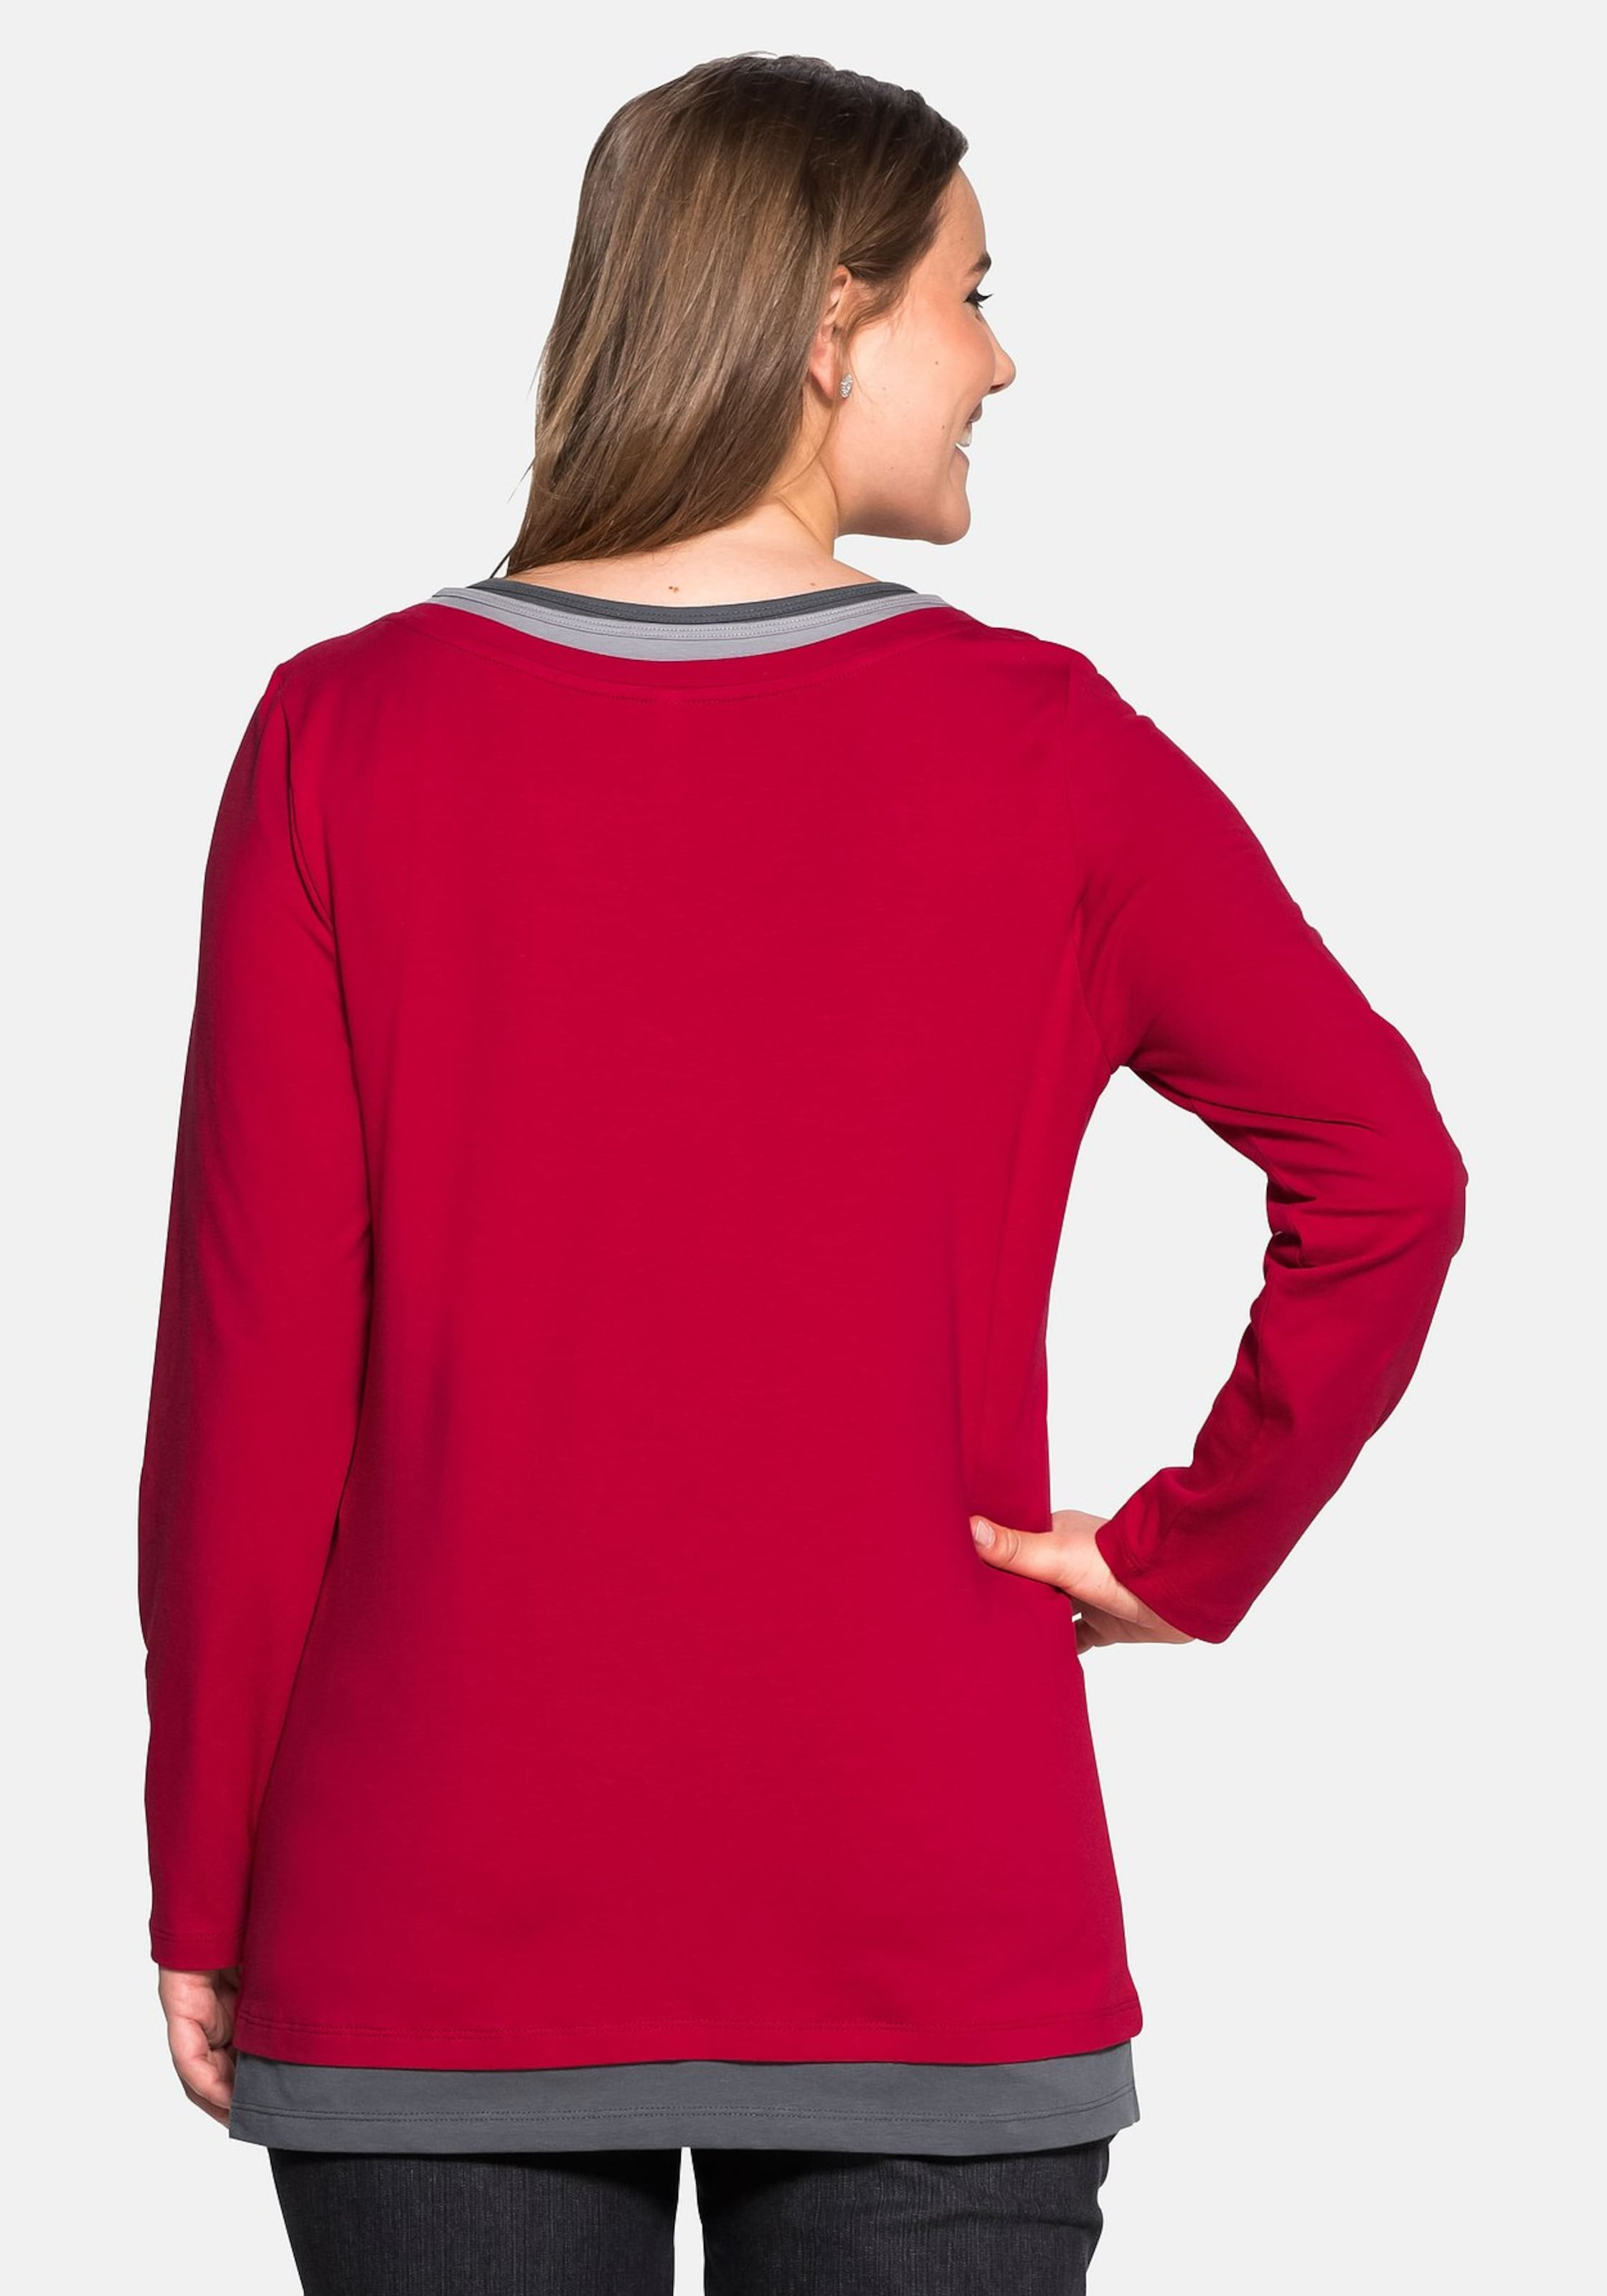 In Sheego Shirt GrauGraphit Casual Rot 4L5j3ARq